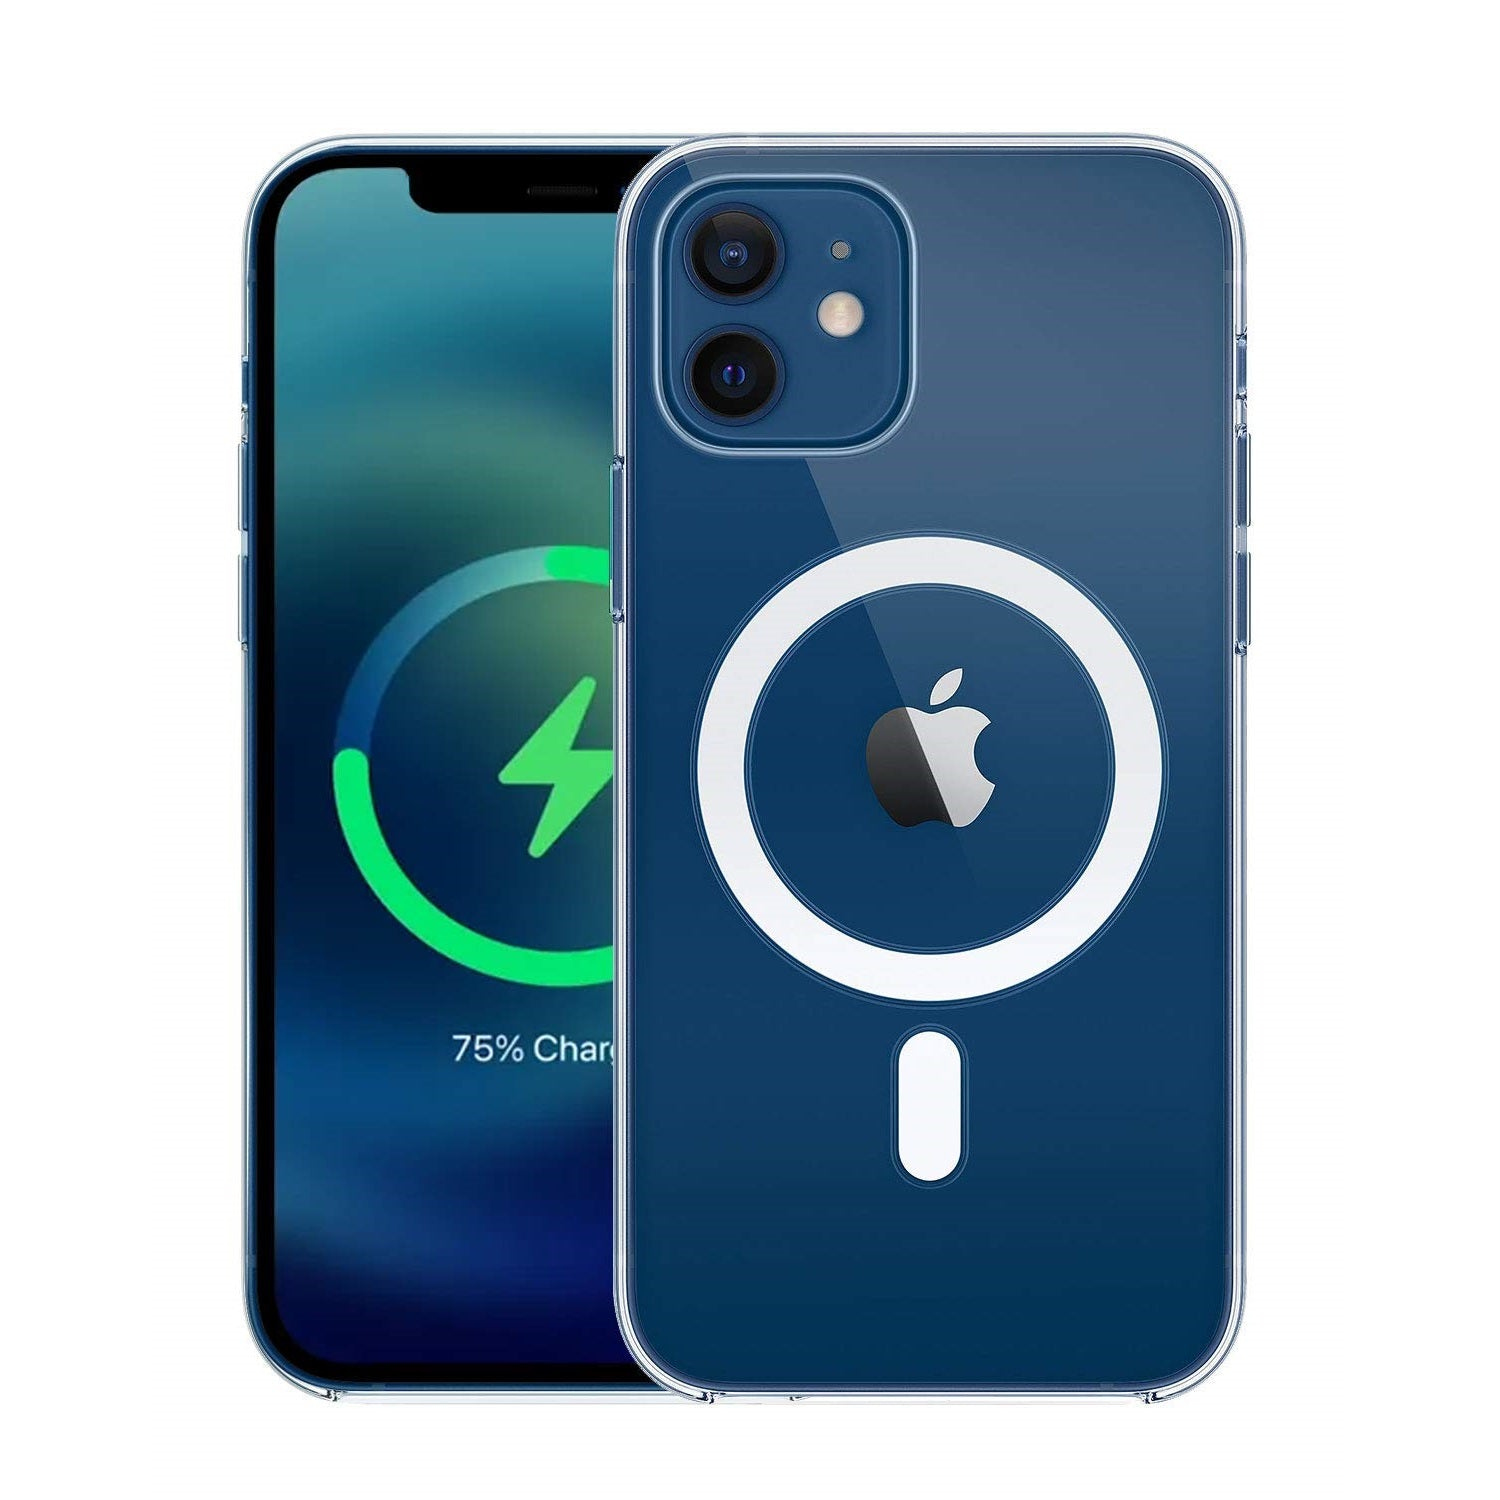 "RAEGR iPhone 12 Mini 5G MagFix Magnetic Case, Supports Mag-Safe Wireless Charging 5.4""- Air Hybrid Case"